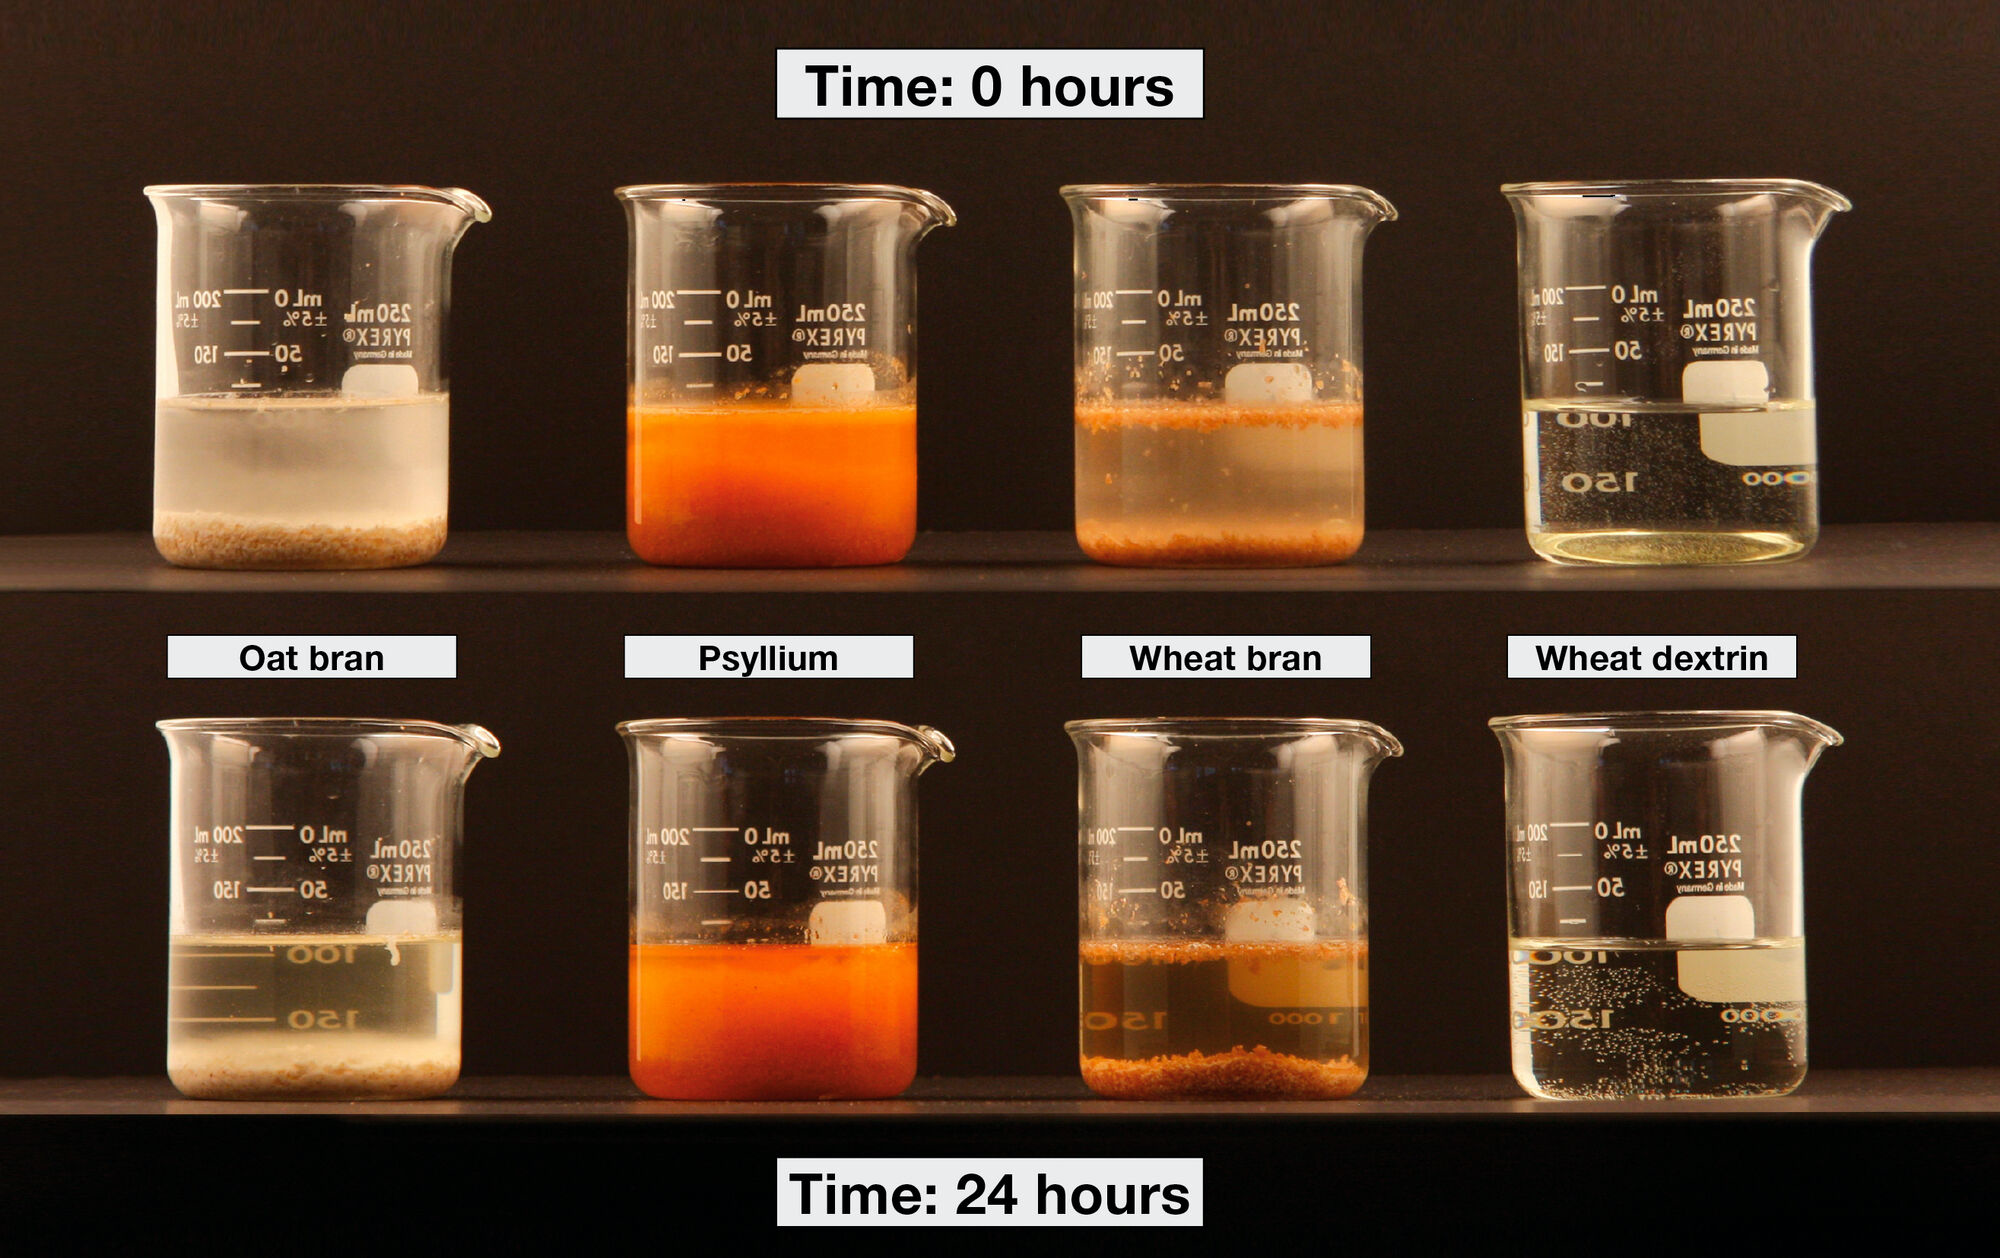 A demonstration of the solubility and viscosity of different fiber sources where equal amounts are added to 100 mL water. The oat and wheat bran do not absorb water and no changes are seen after 24 hours, whilst the wheat dextrin powder dissolves immediately and stays in solution. Psyllium powder absorbs water and forms a thick gel after 24 hours.